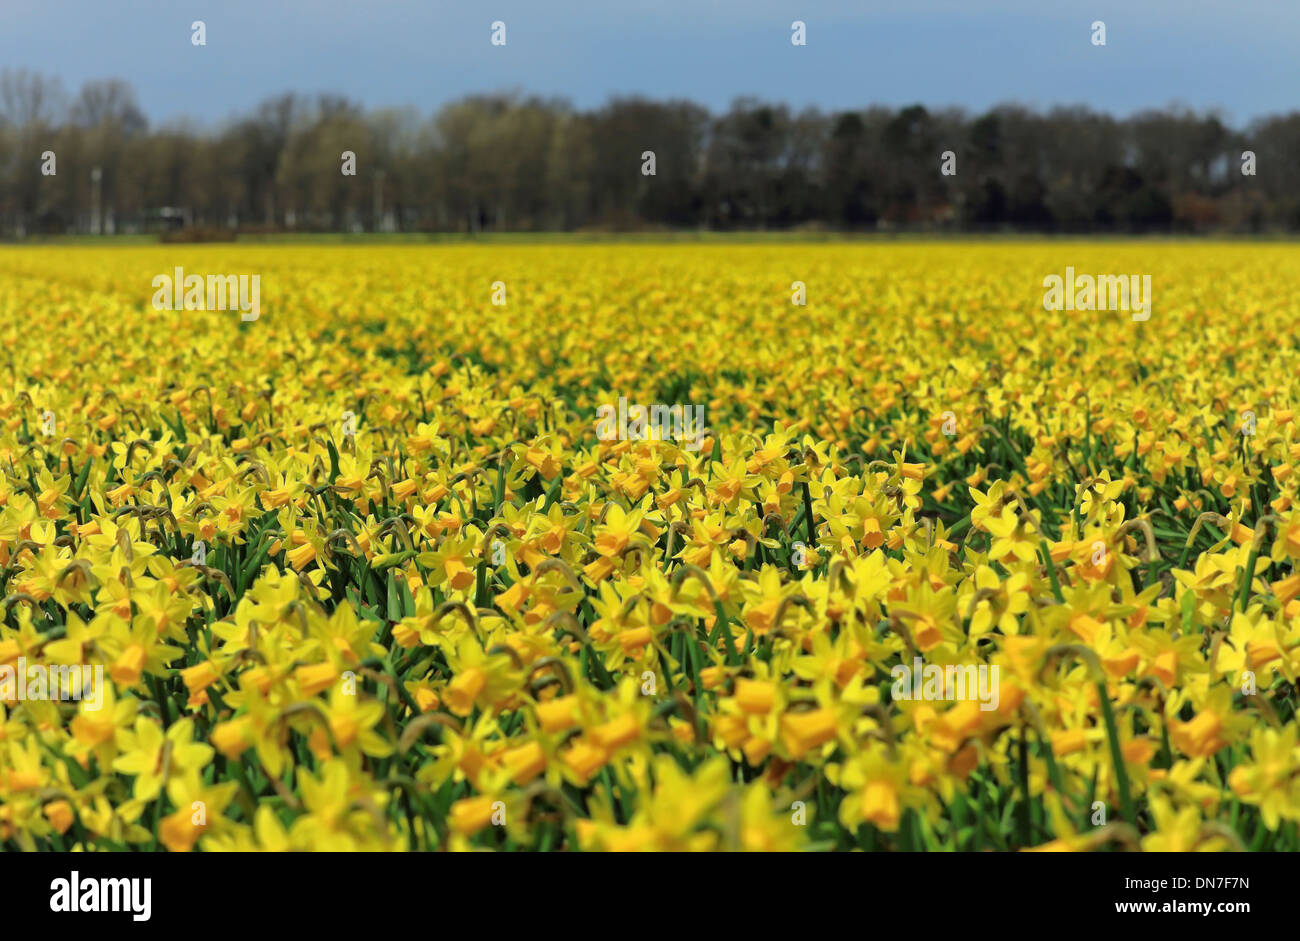 A sea of yellow: Flowering daffodils in spring, Noordwijk, South Holland, The Netherlands. - Stock Image